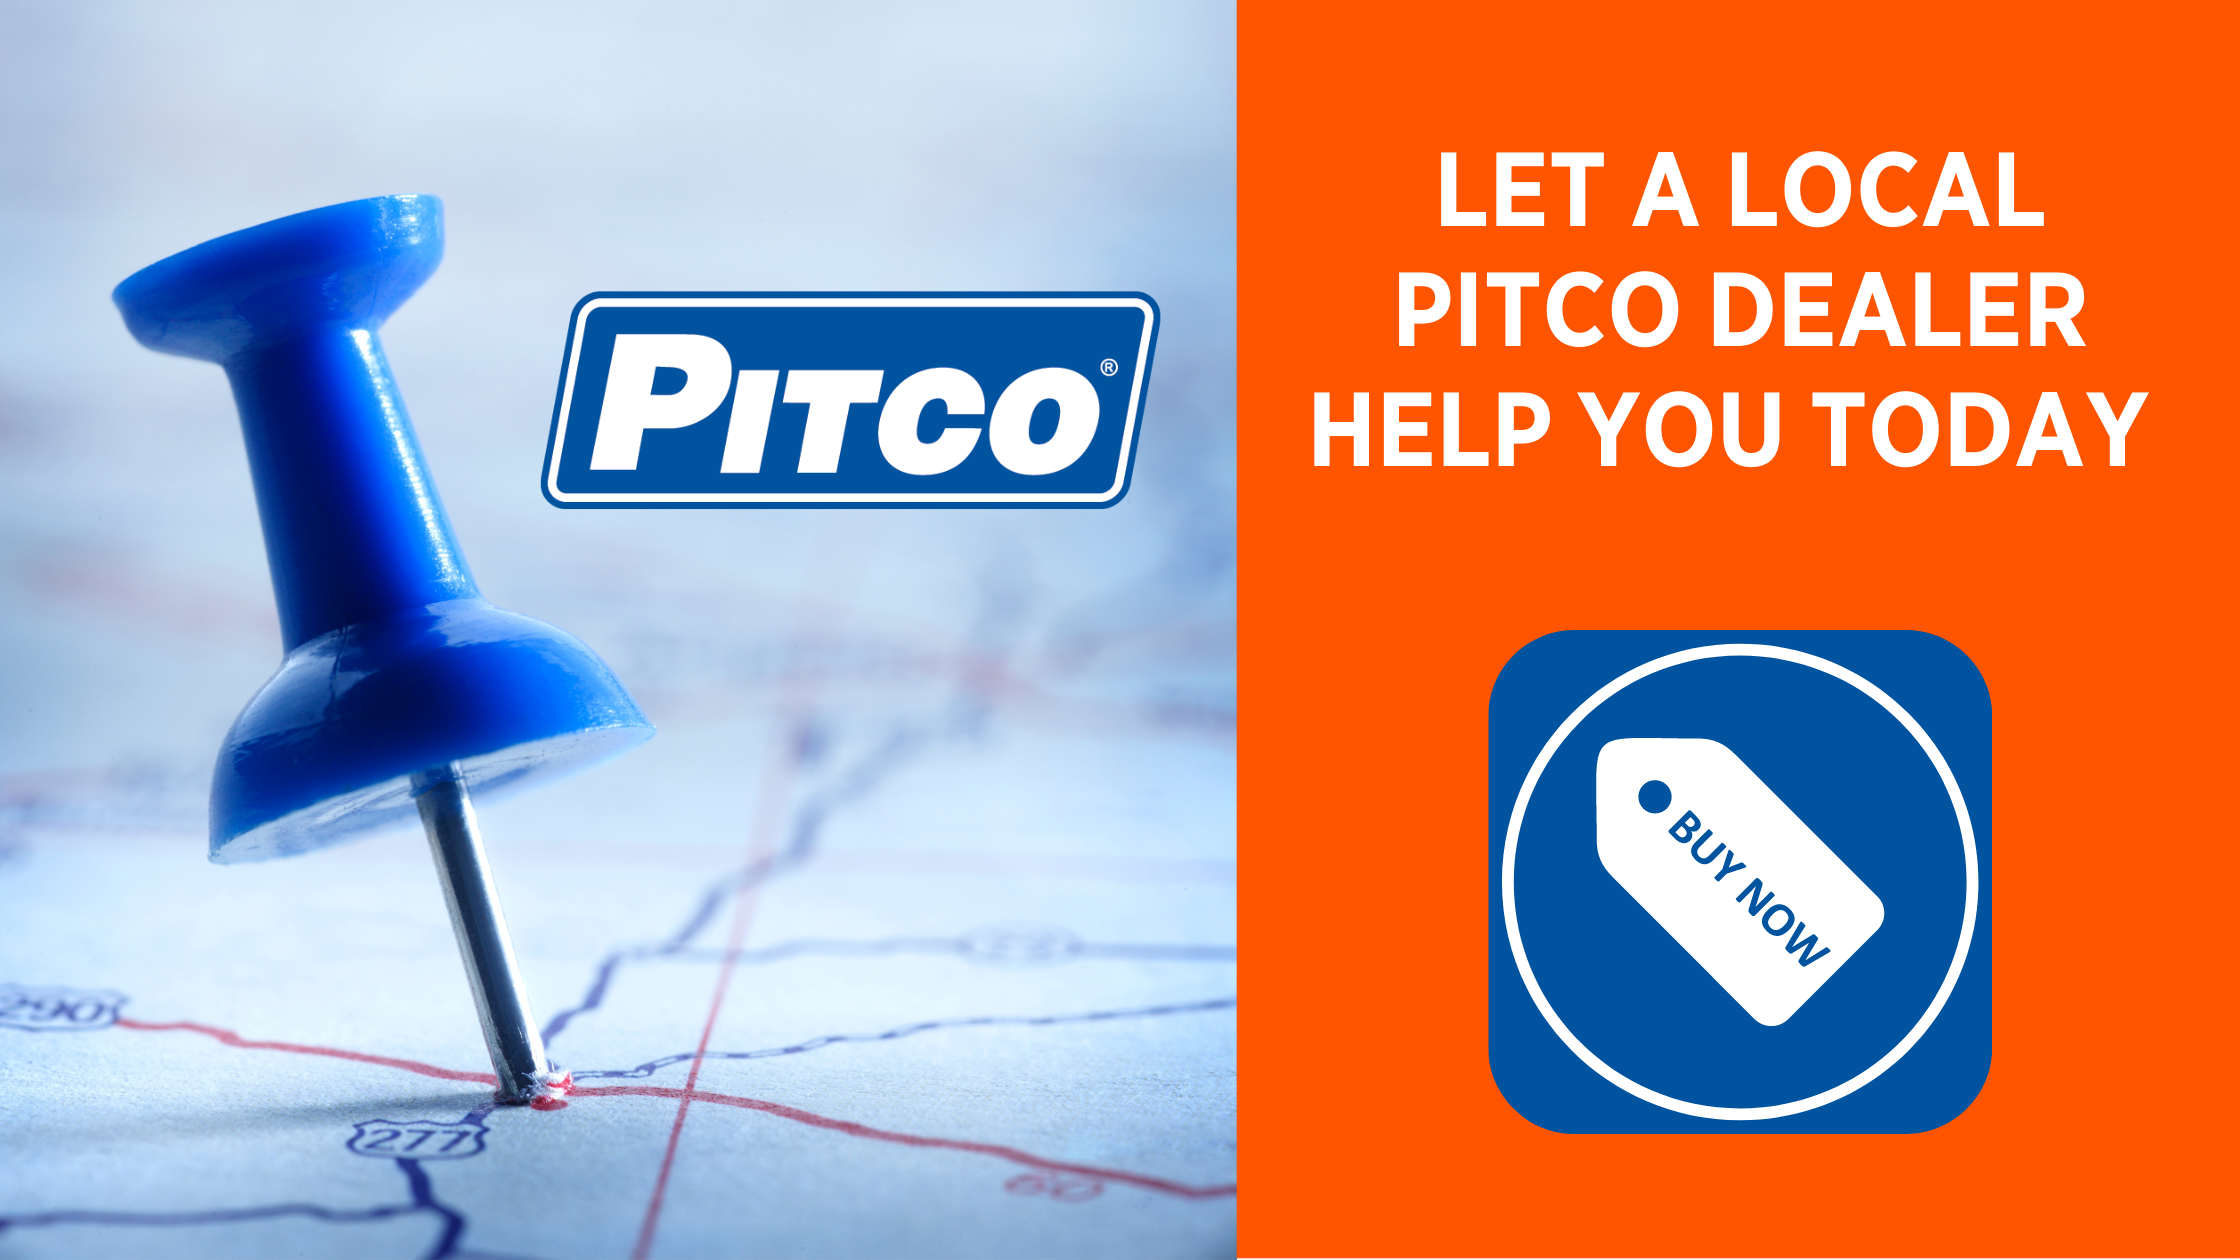 Help from a local Pitco dealer